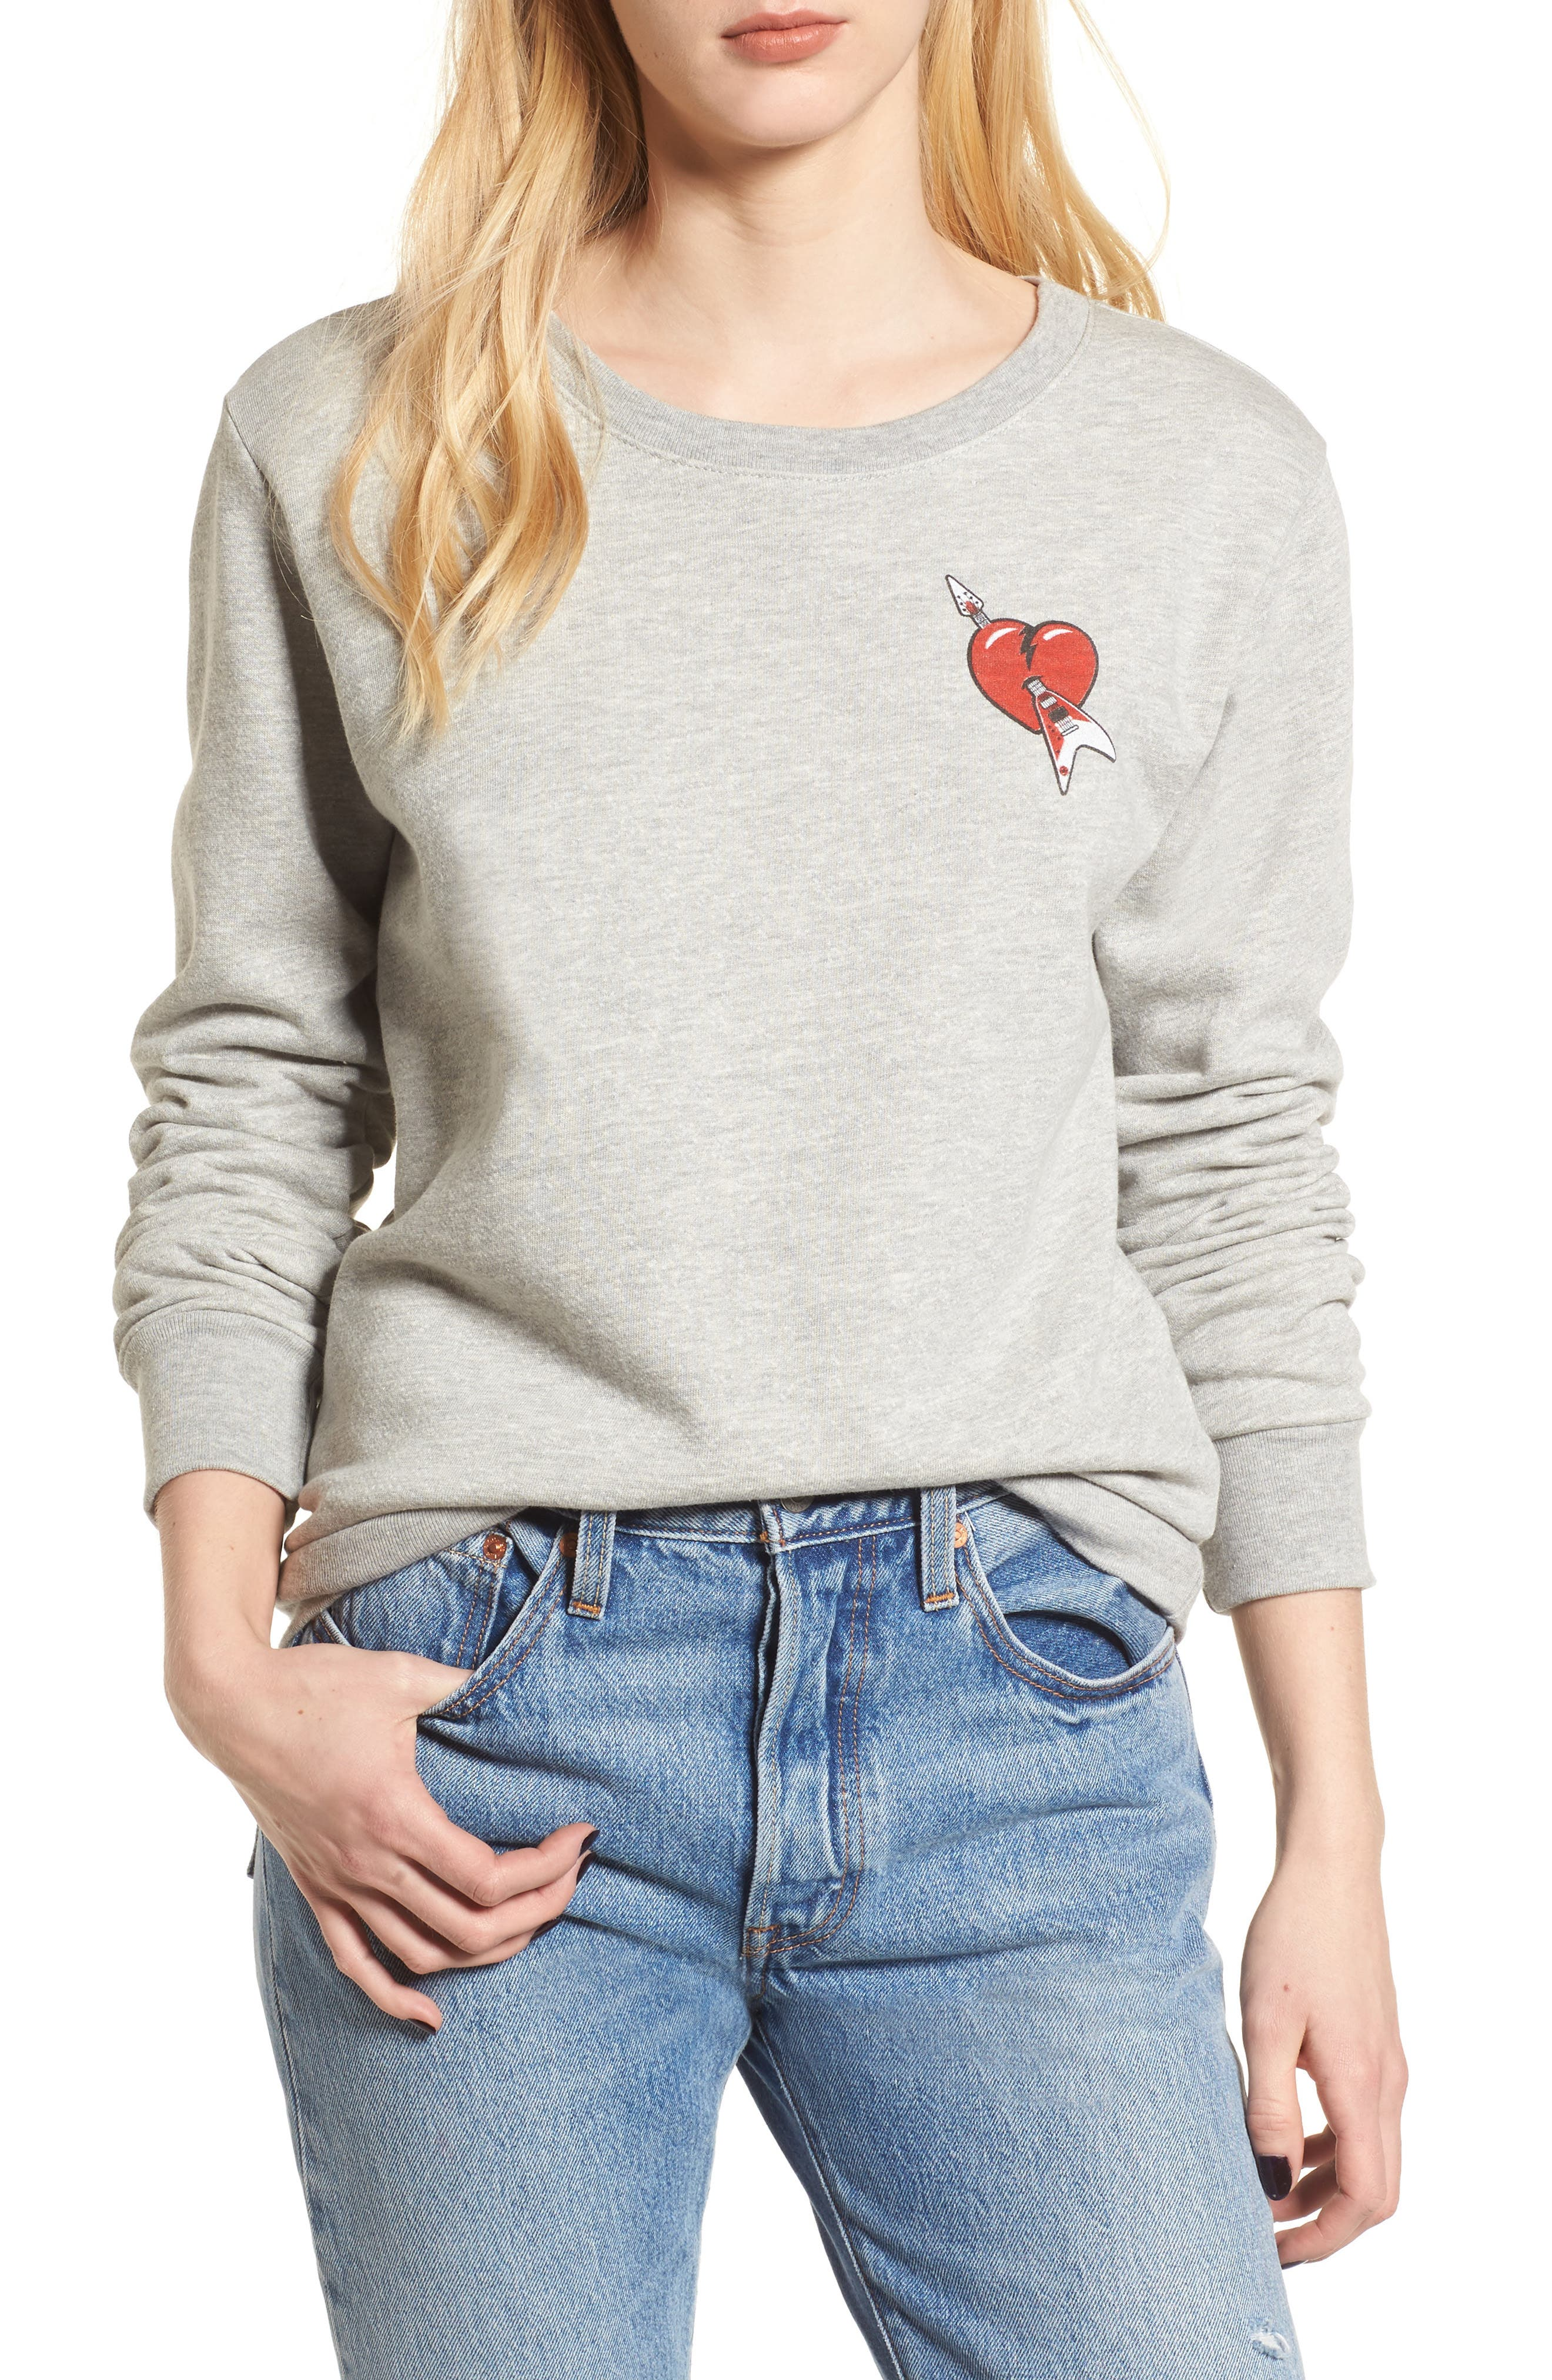 Tom Petty and the Heartbreakers Sweatshirt,                         Main,                         color, Heather Grey